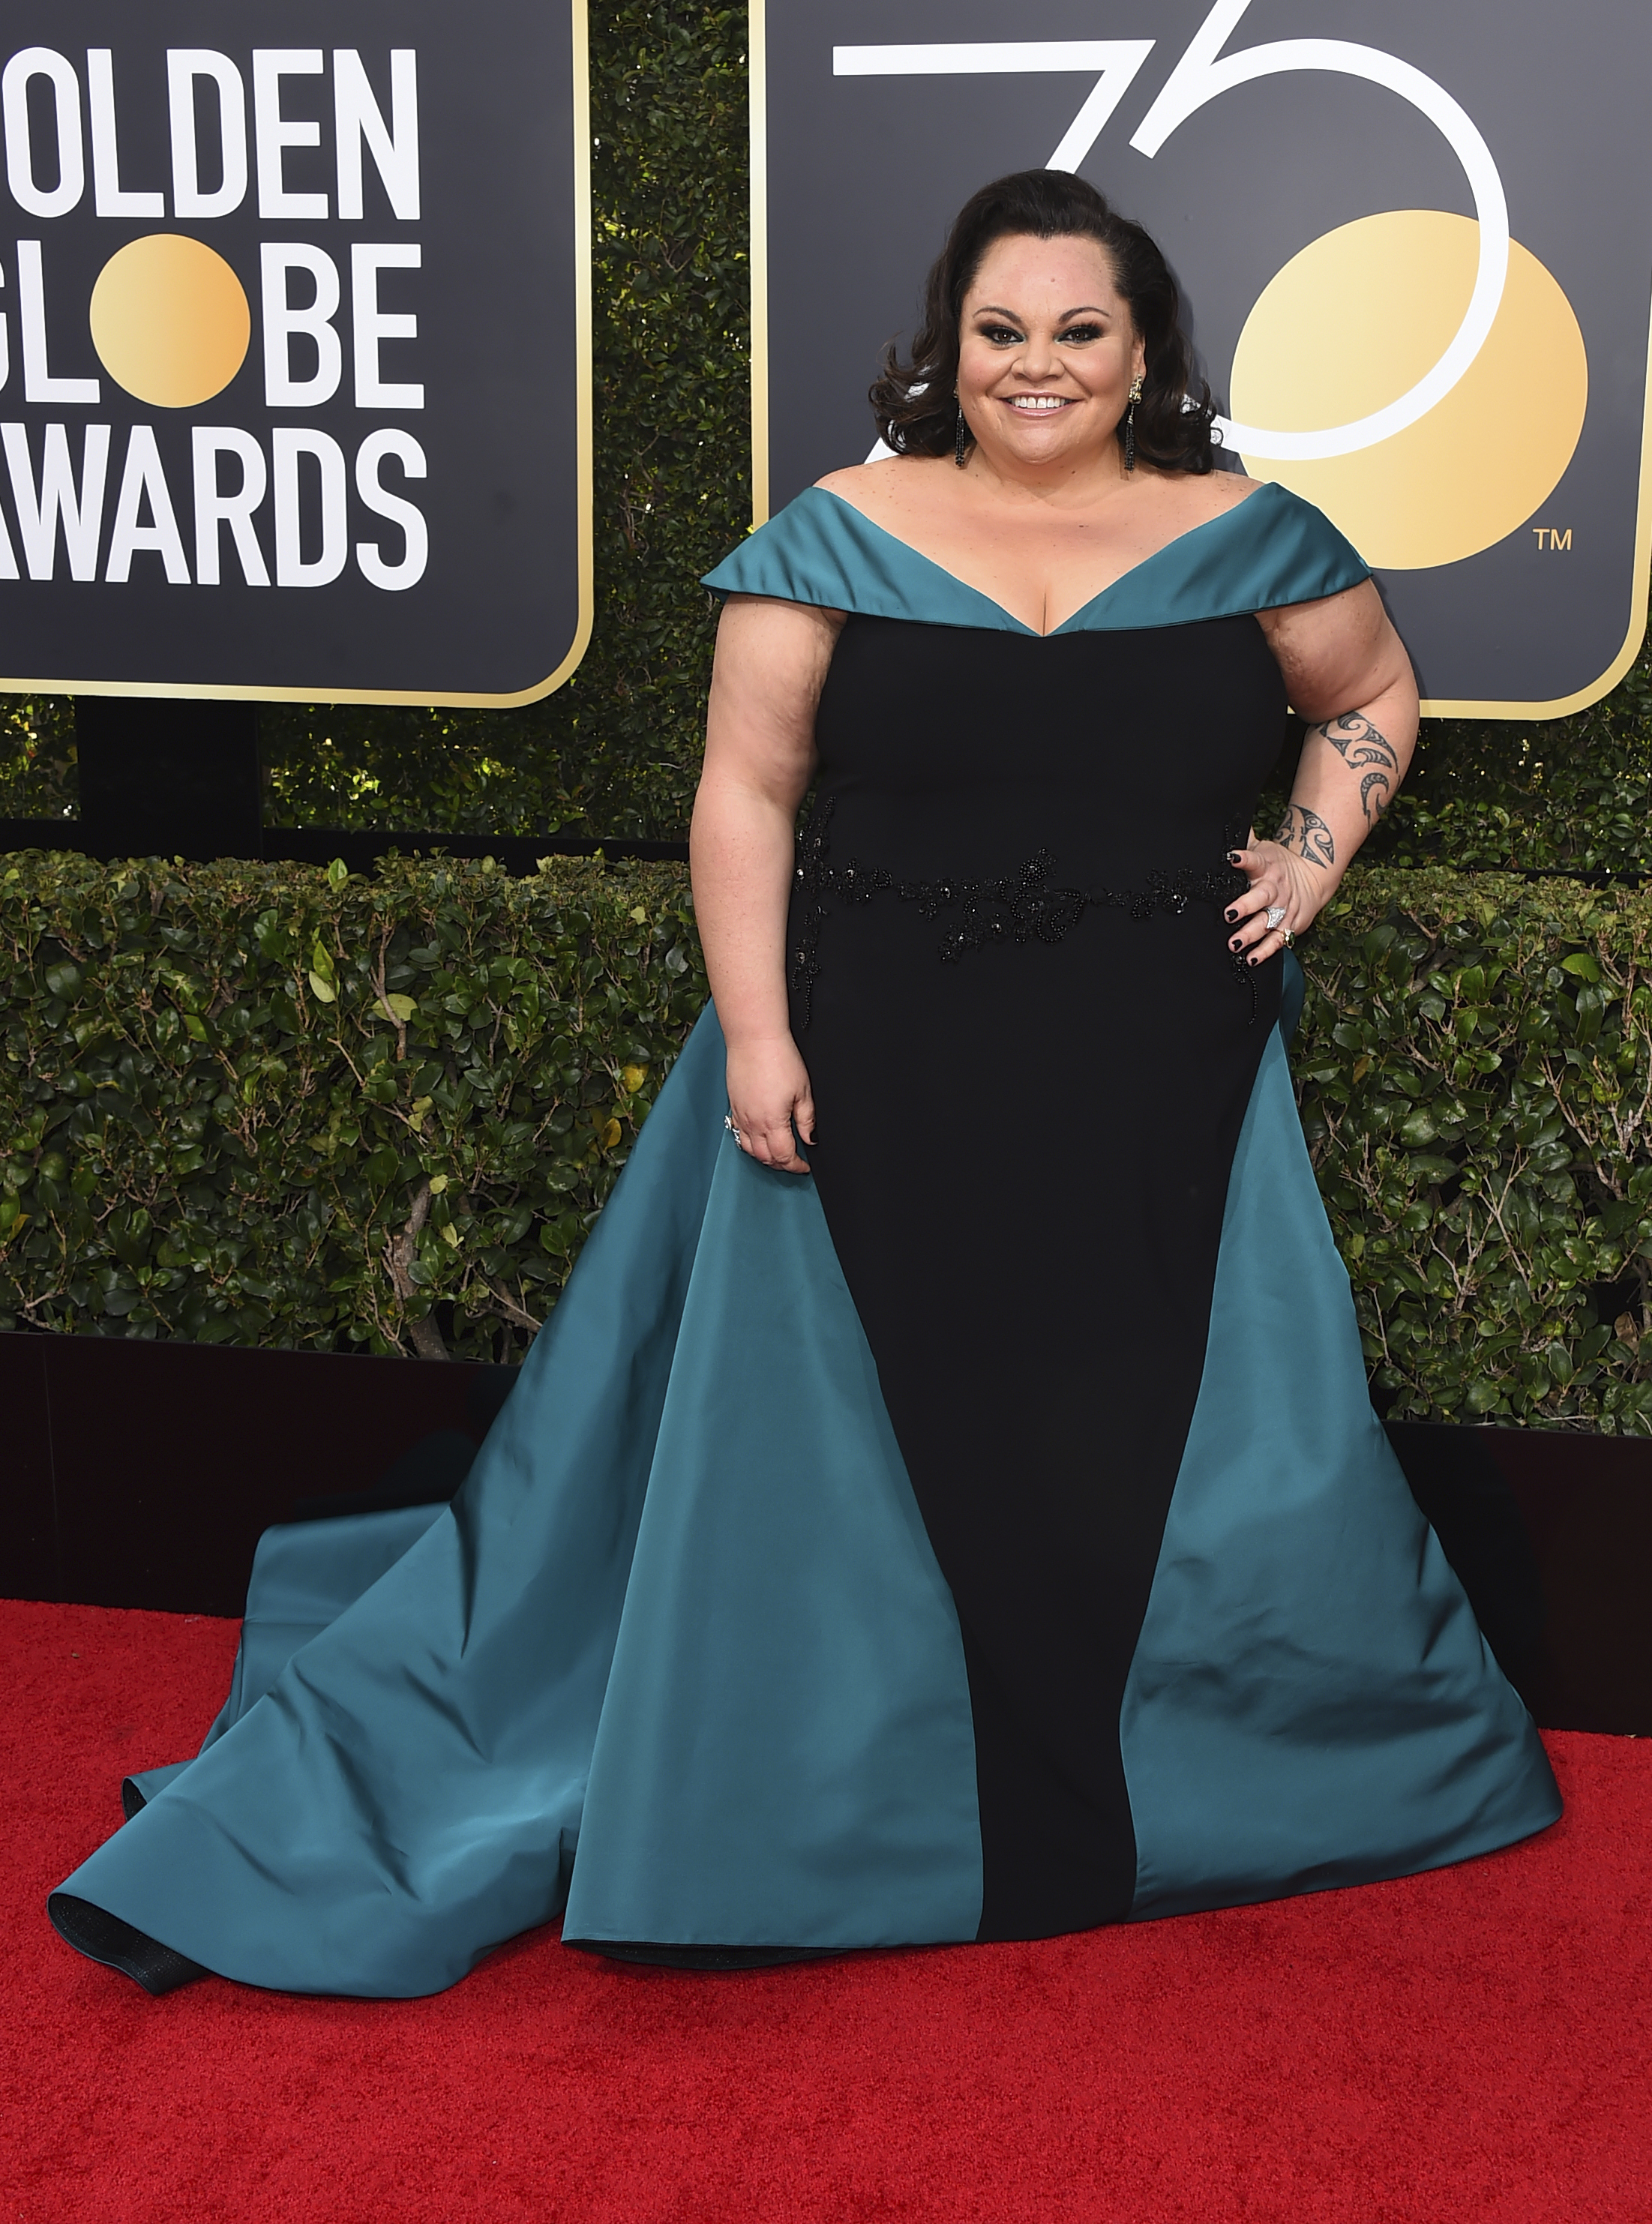 <div class='meta'><div class='origin-logo' data-origin='AP'></div><span class='caption-text' data-credit='Jordan Strauss/Invision/AP'>Keala Settle arrives at the 75th annual Golden Globe Awards at the Beverly Hilton Hotel on Sunday, Jan. 7, 2018, in Beverly Hills, Calif.</span></div>